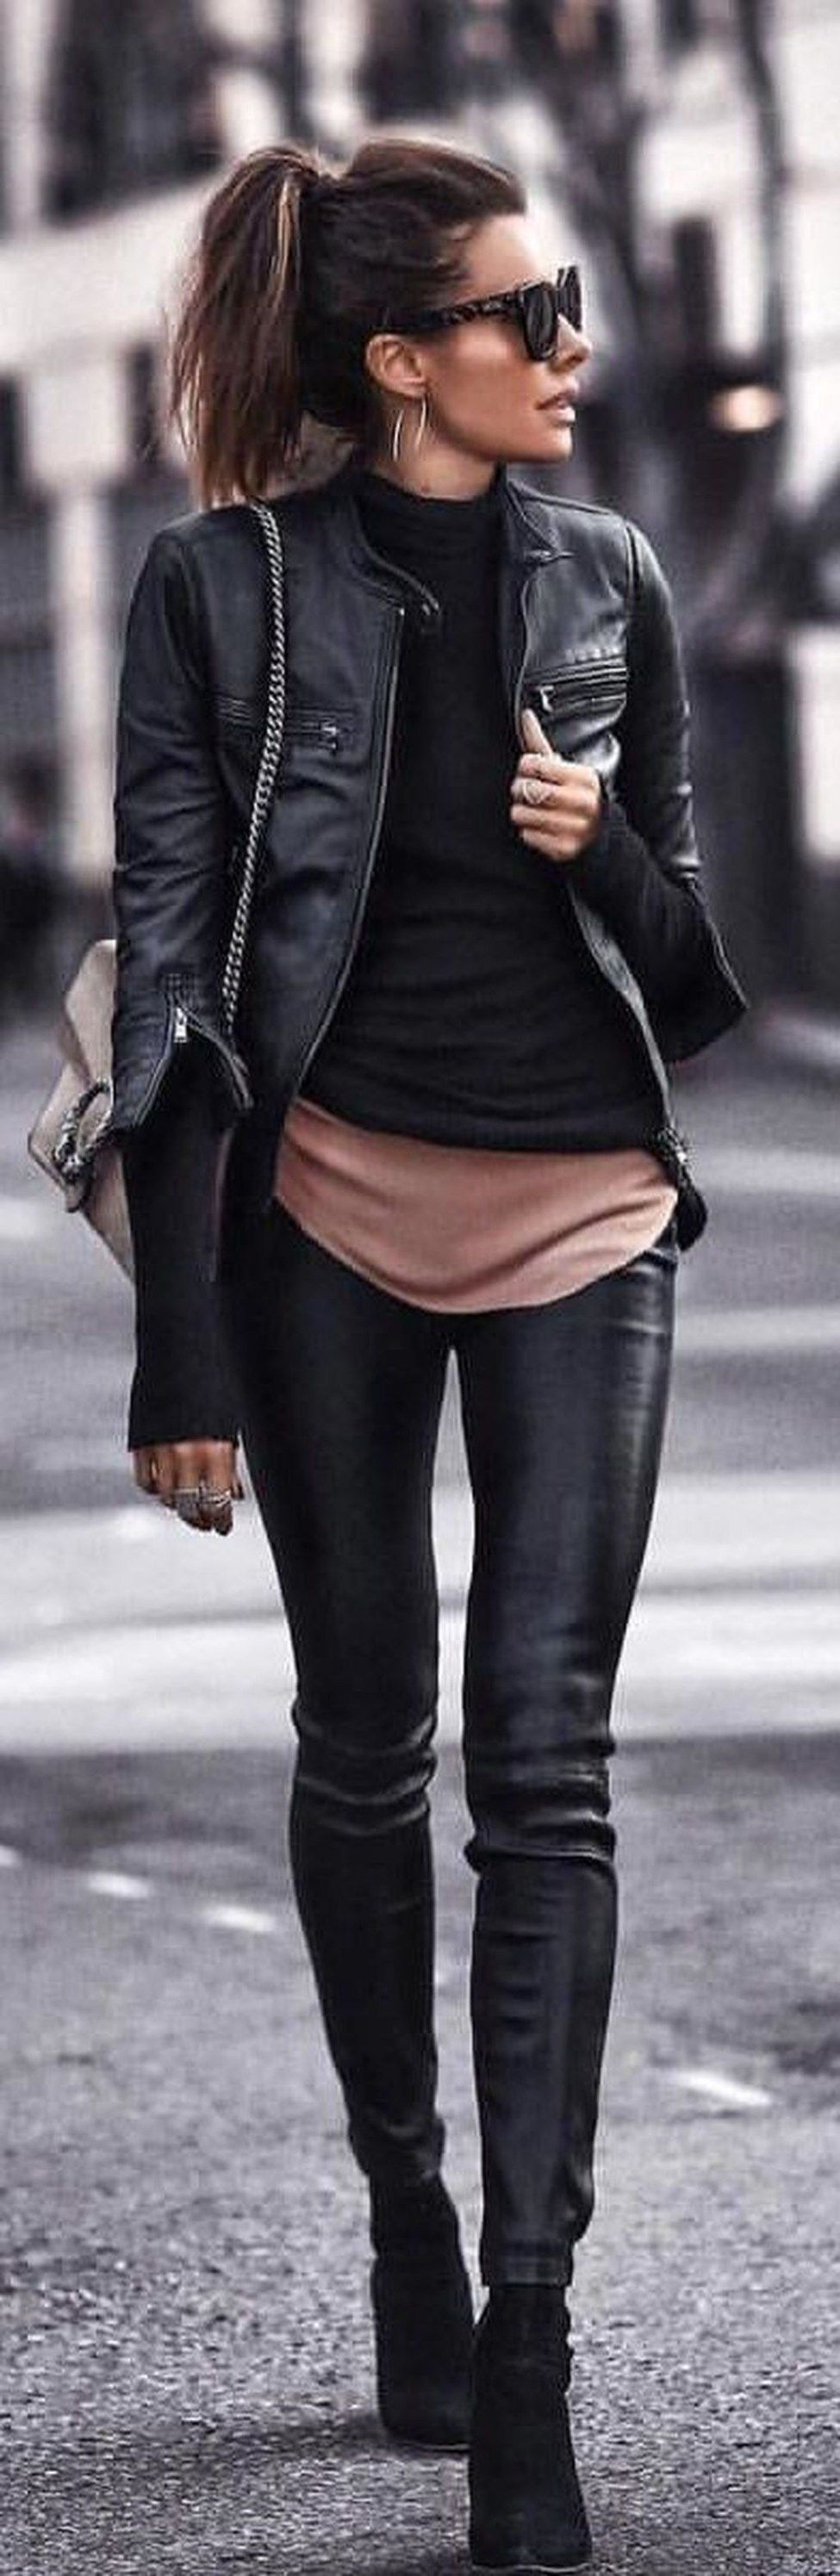 9adc43acf77 Popular Winter Outfit Ideas For Women 31